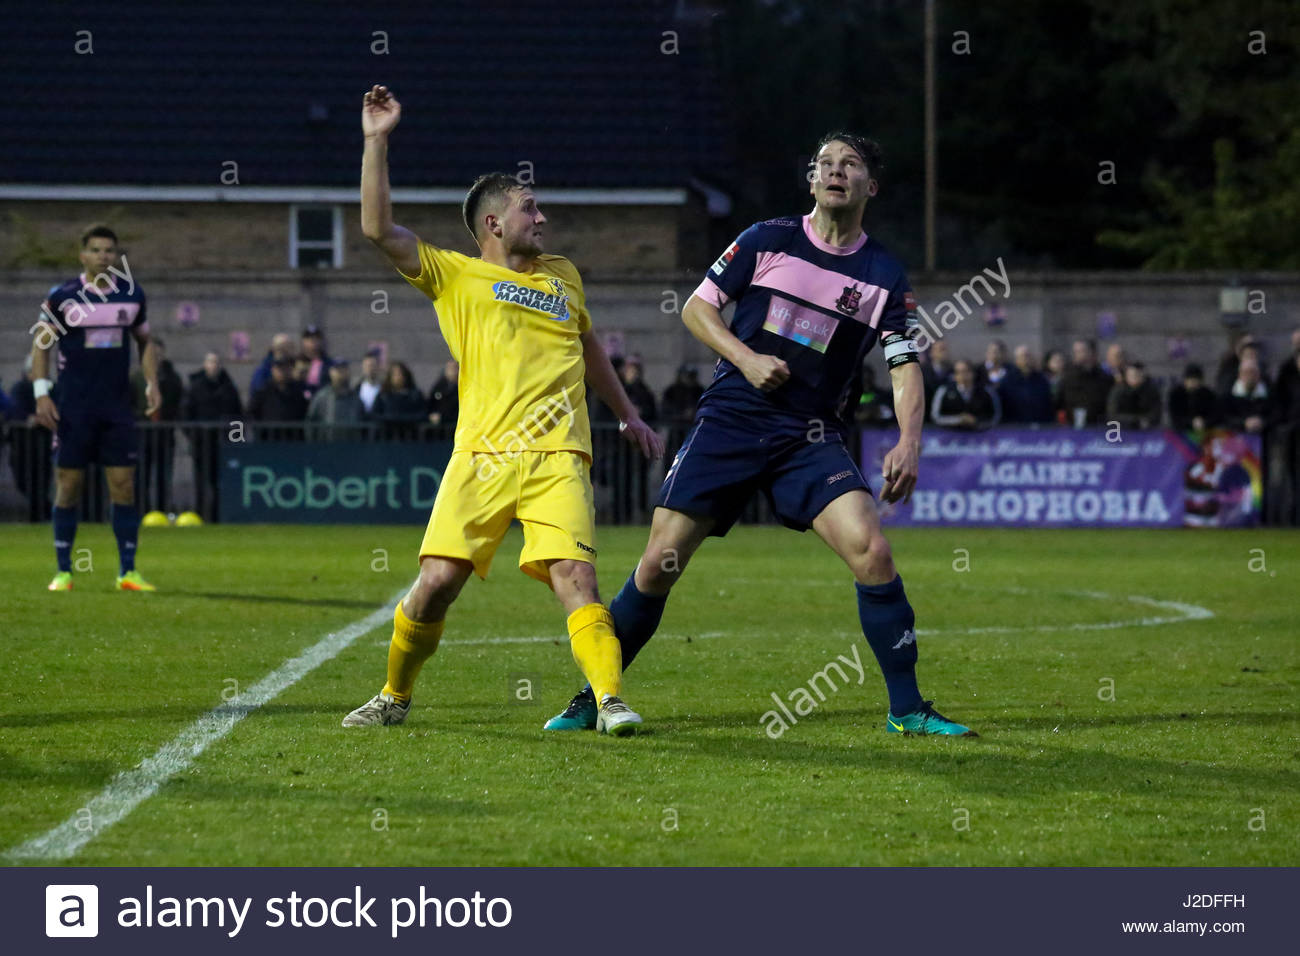 London, UK. 27th April, 2017. Billy Crook of Enfield Town and Kenny Beaney of Dulwich Hamlet during their Ryman - Stock Image